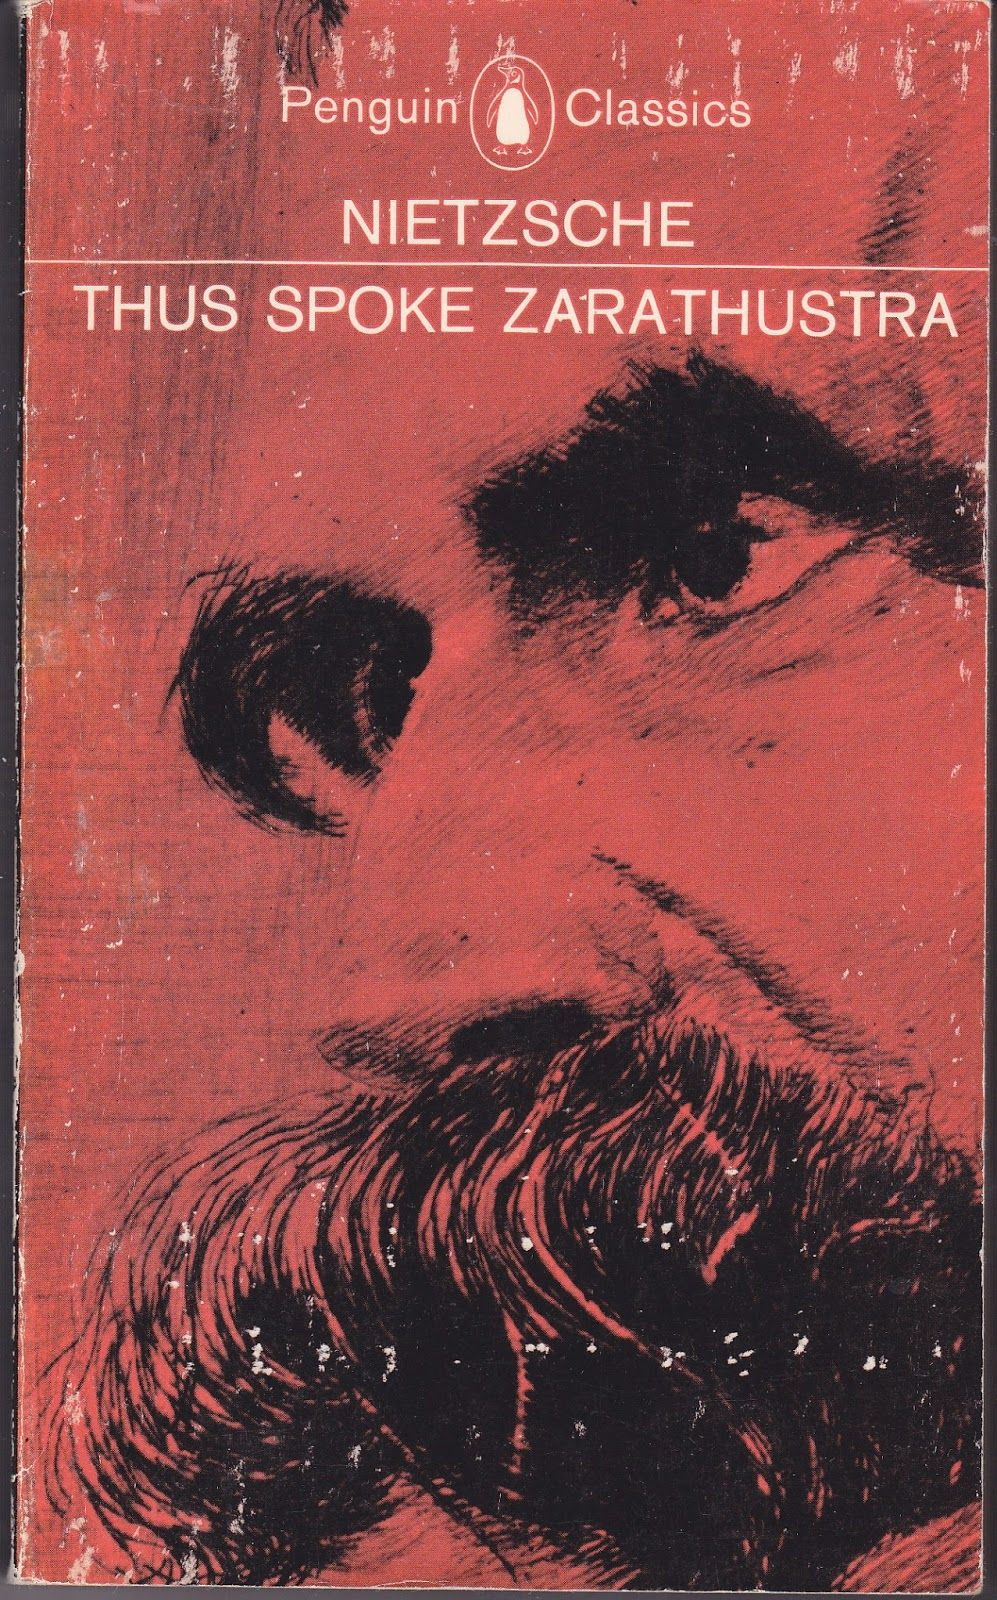 friedrich nietzsches thus spake zarathustra 1883 essay Friedrich nietzsche the cay science  thus spoke zarathustra (1883-5) and beyond cood and evi/ (1886) the last section of book four of the cay science.